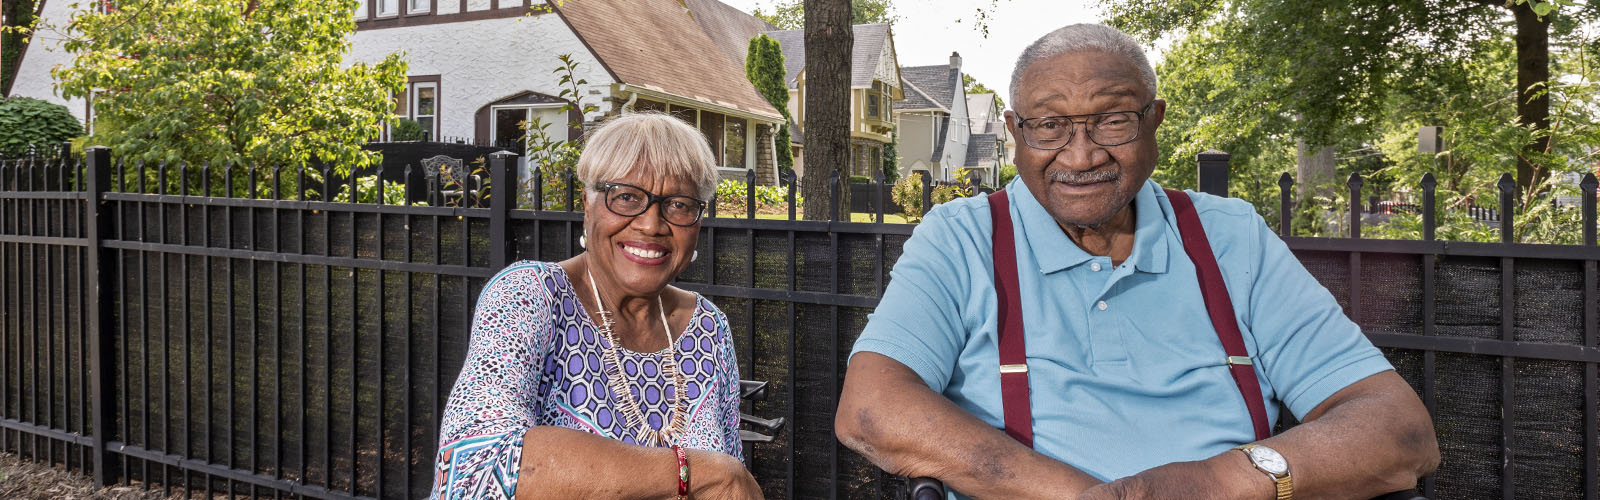 Kathleen and Henry Christmon moved to Paddock Hills in 1965, making it the first successfully integrated neighborhood in the city.